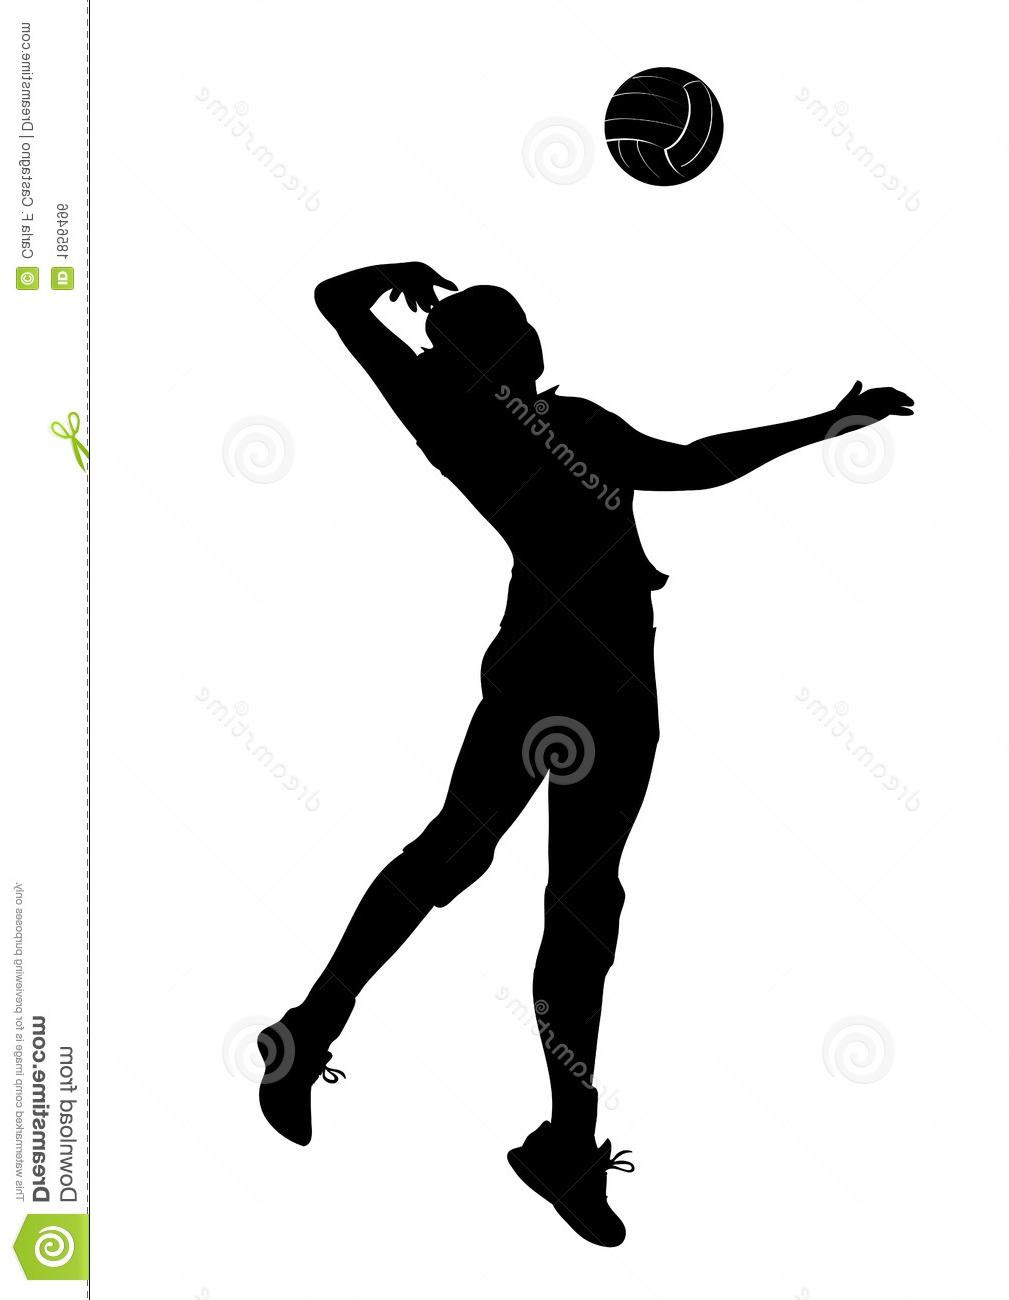 1009x1300 Woman Volleyball Player Silhouette Passing Ball Vector Image